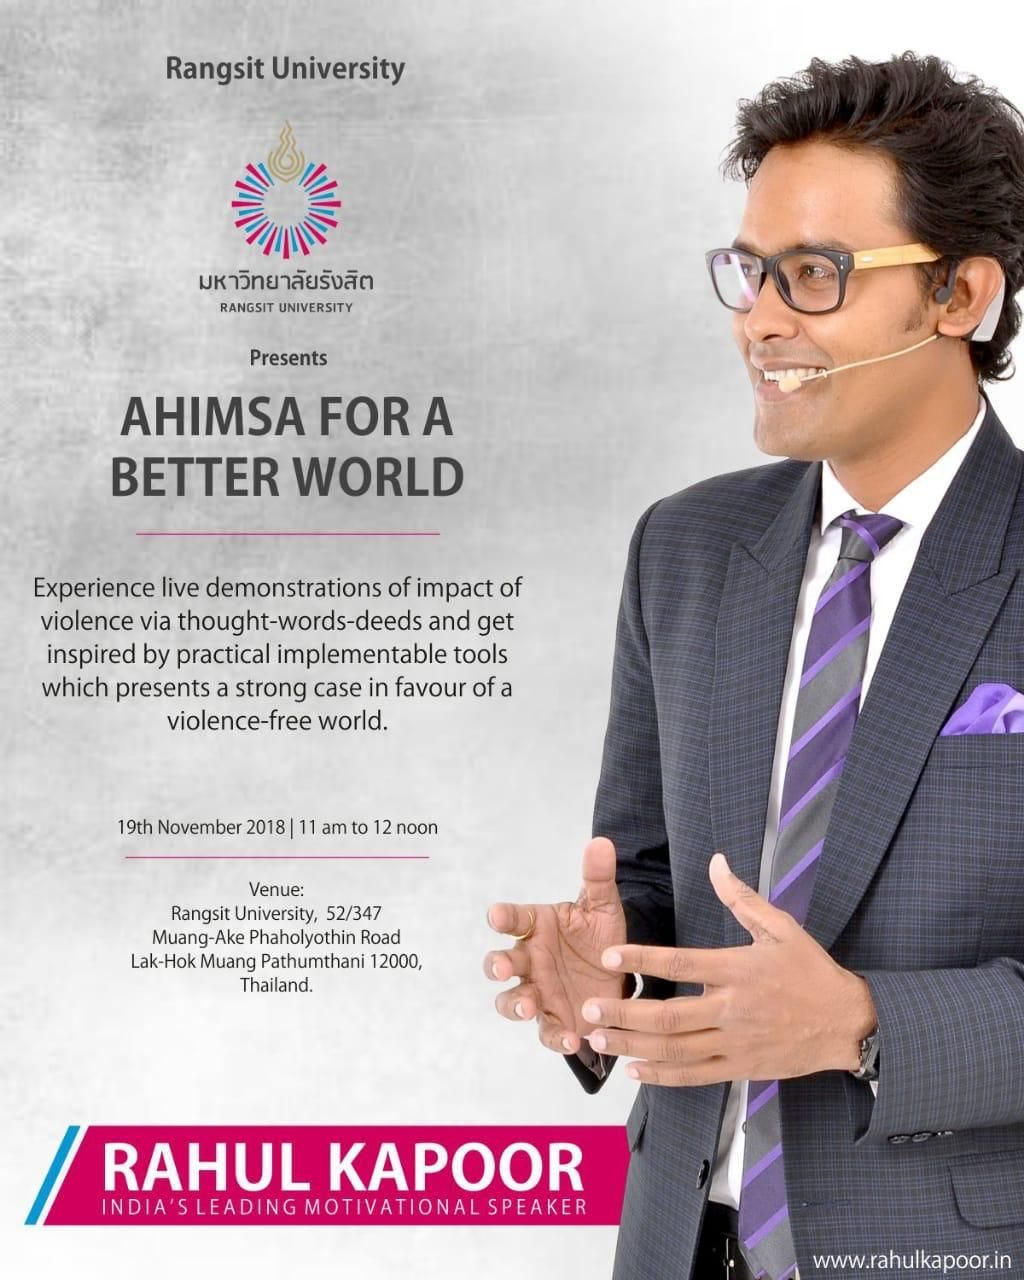 AHIMSA for a better world by Rahul Kapoor, Indian's top